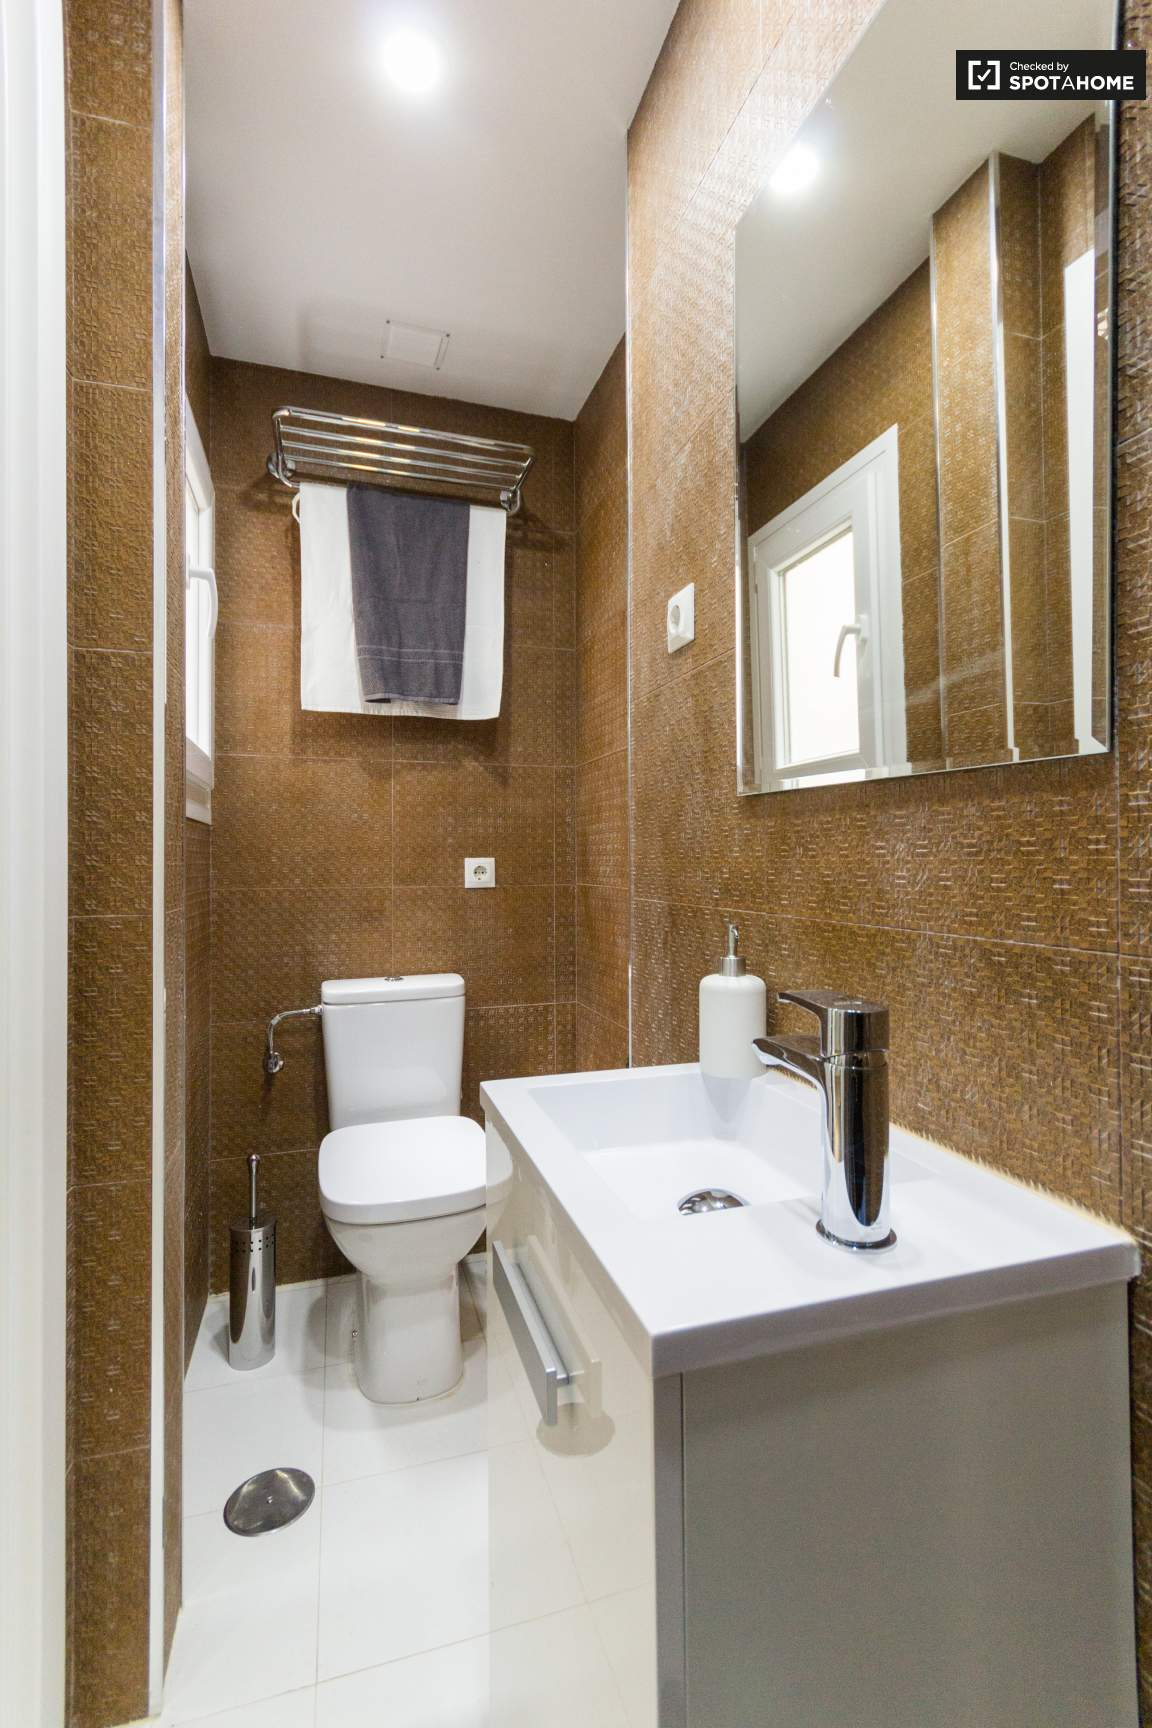 Ensuite bathroom (bedroom 4)